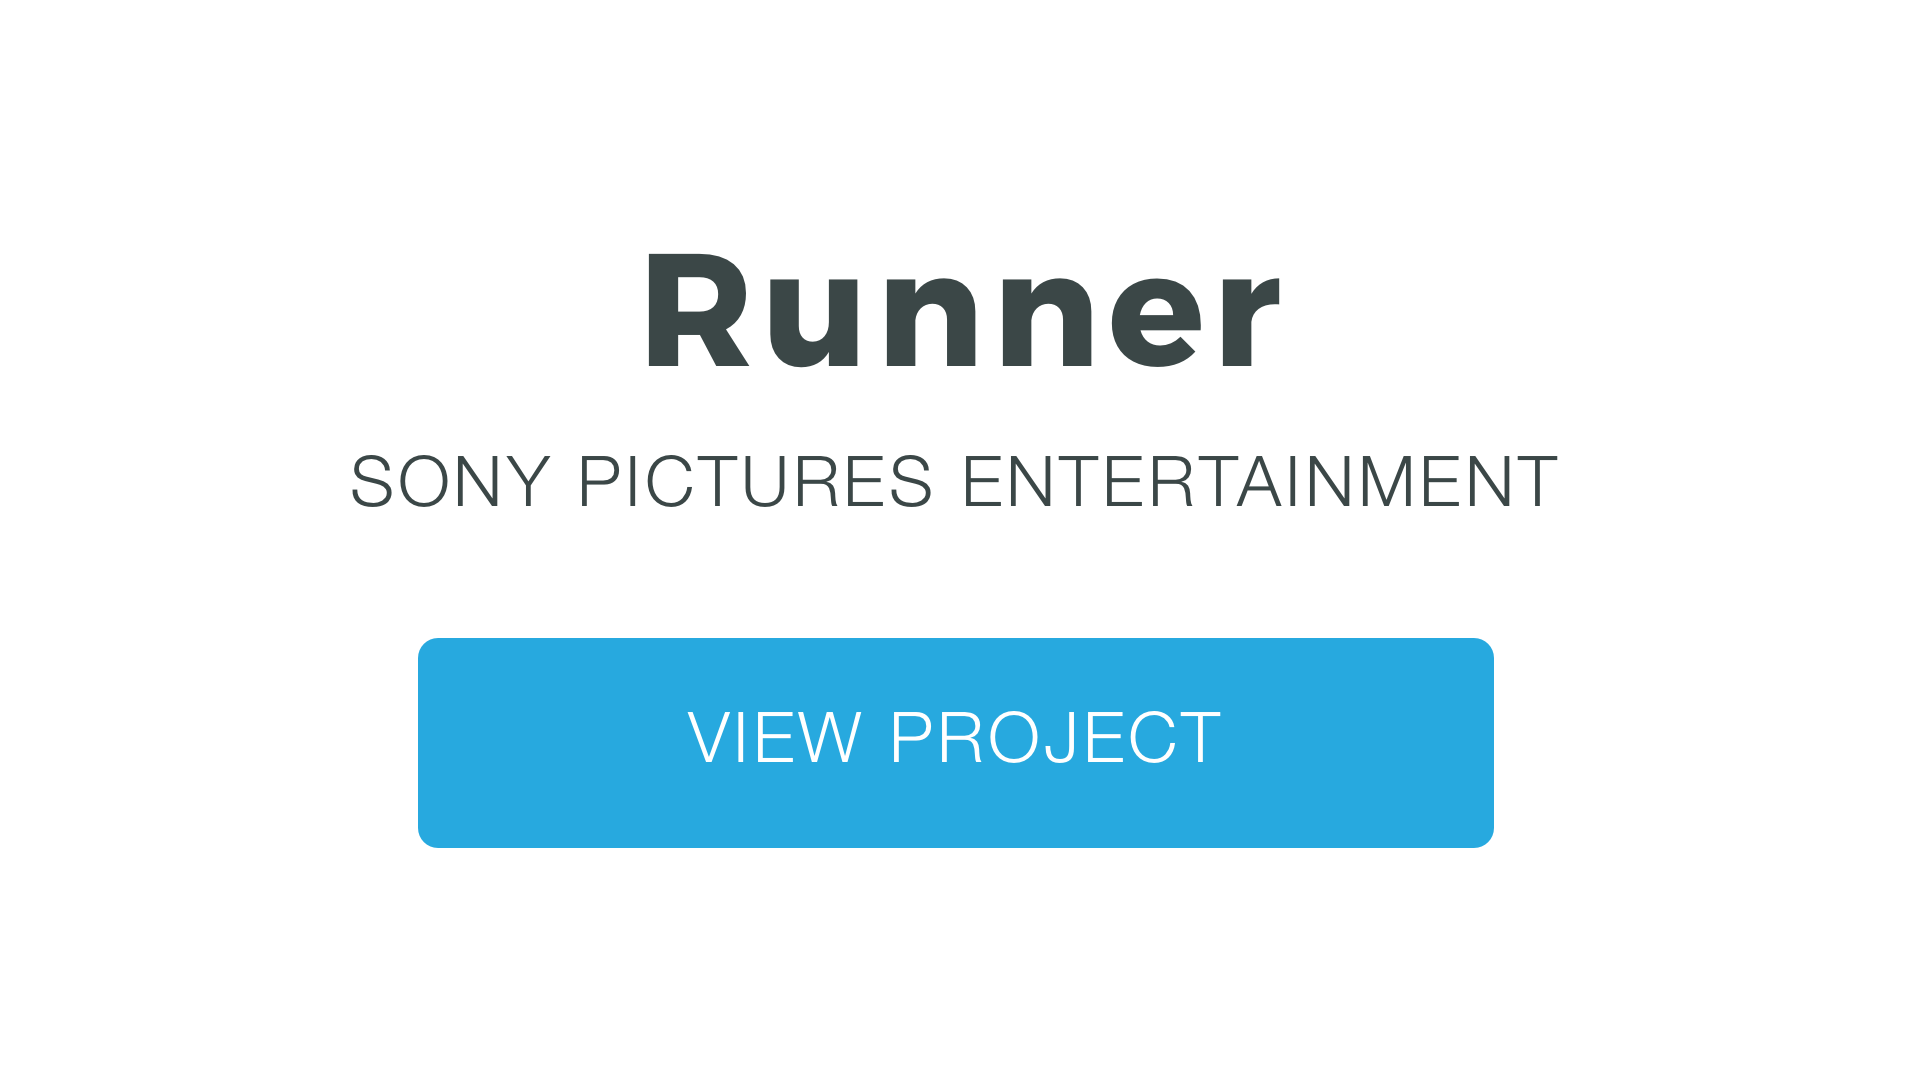 Runner_View2@2x.png